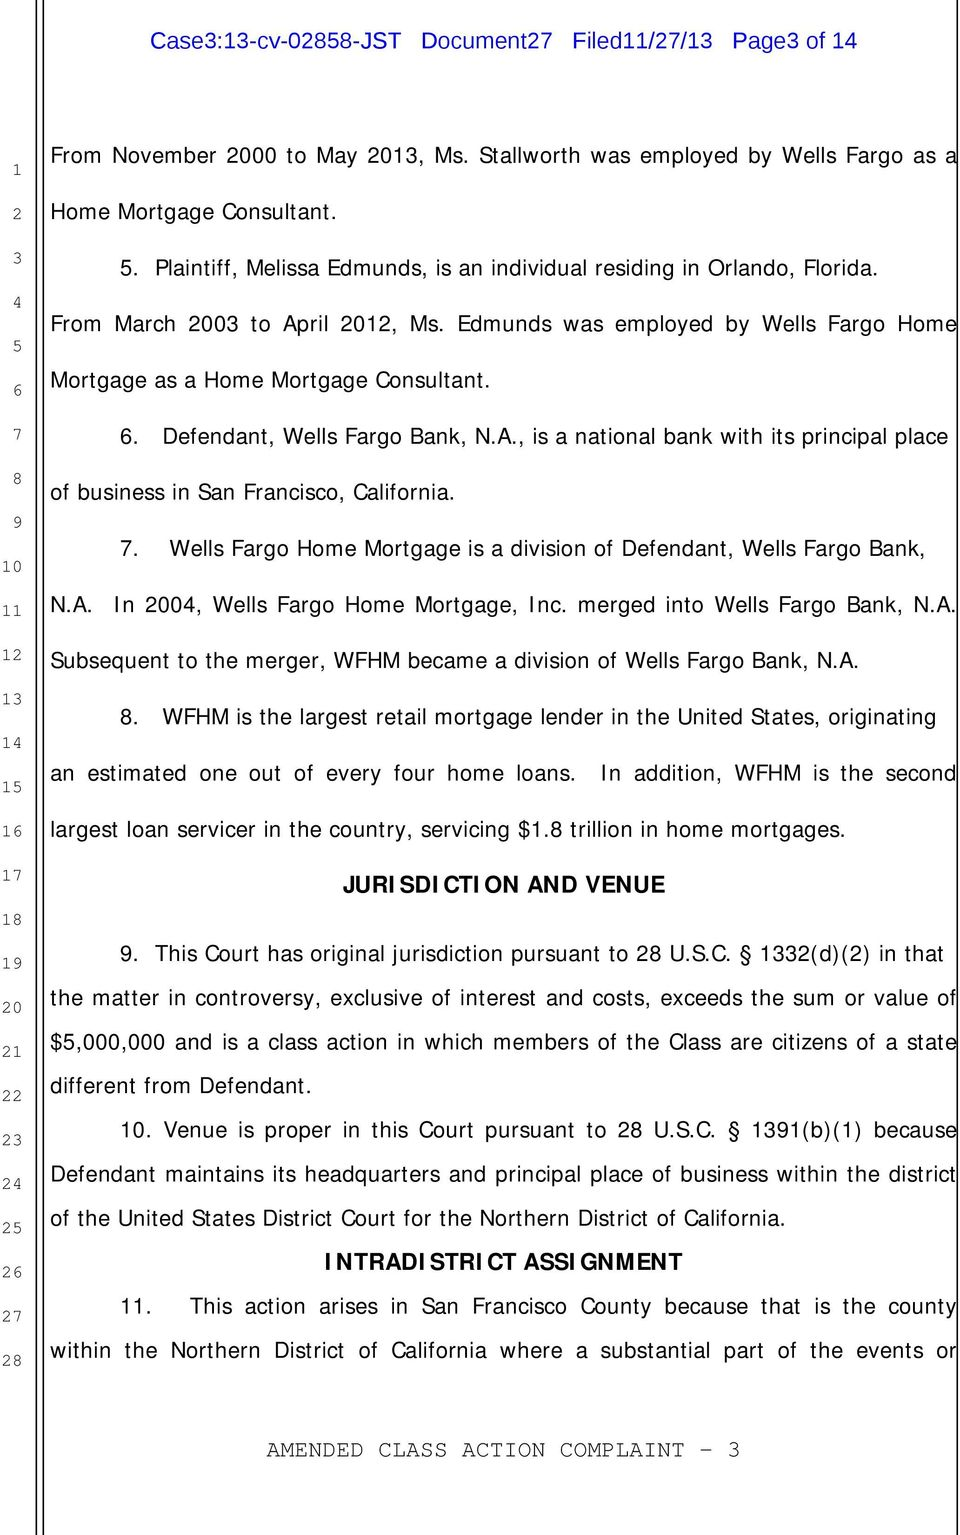 . Defendant, Wells Fargo Bank, N.A., is a national bank with its principal place of business in San Francisco, California.. Wells Fargo Home Mortgage is a division of Defendant, Wells Fargo Bank, N.A. In 0, Wells Fargo Home Mortgage, Inc.